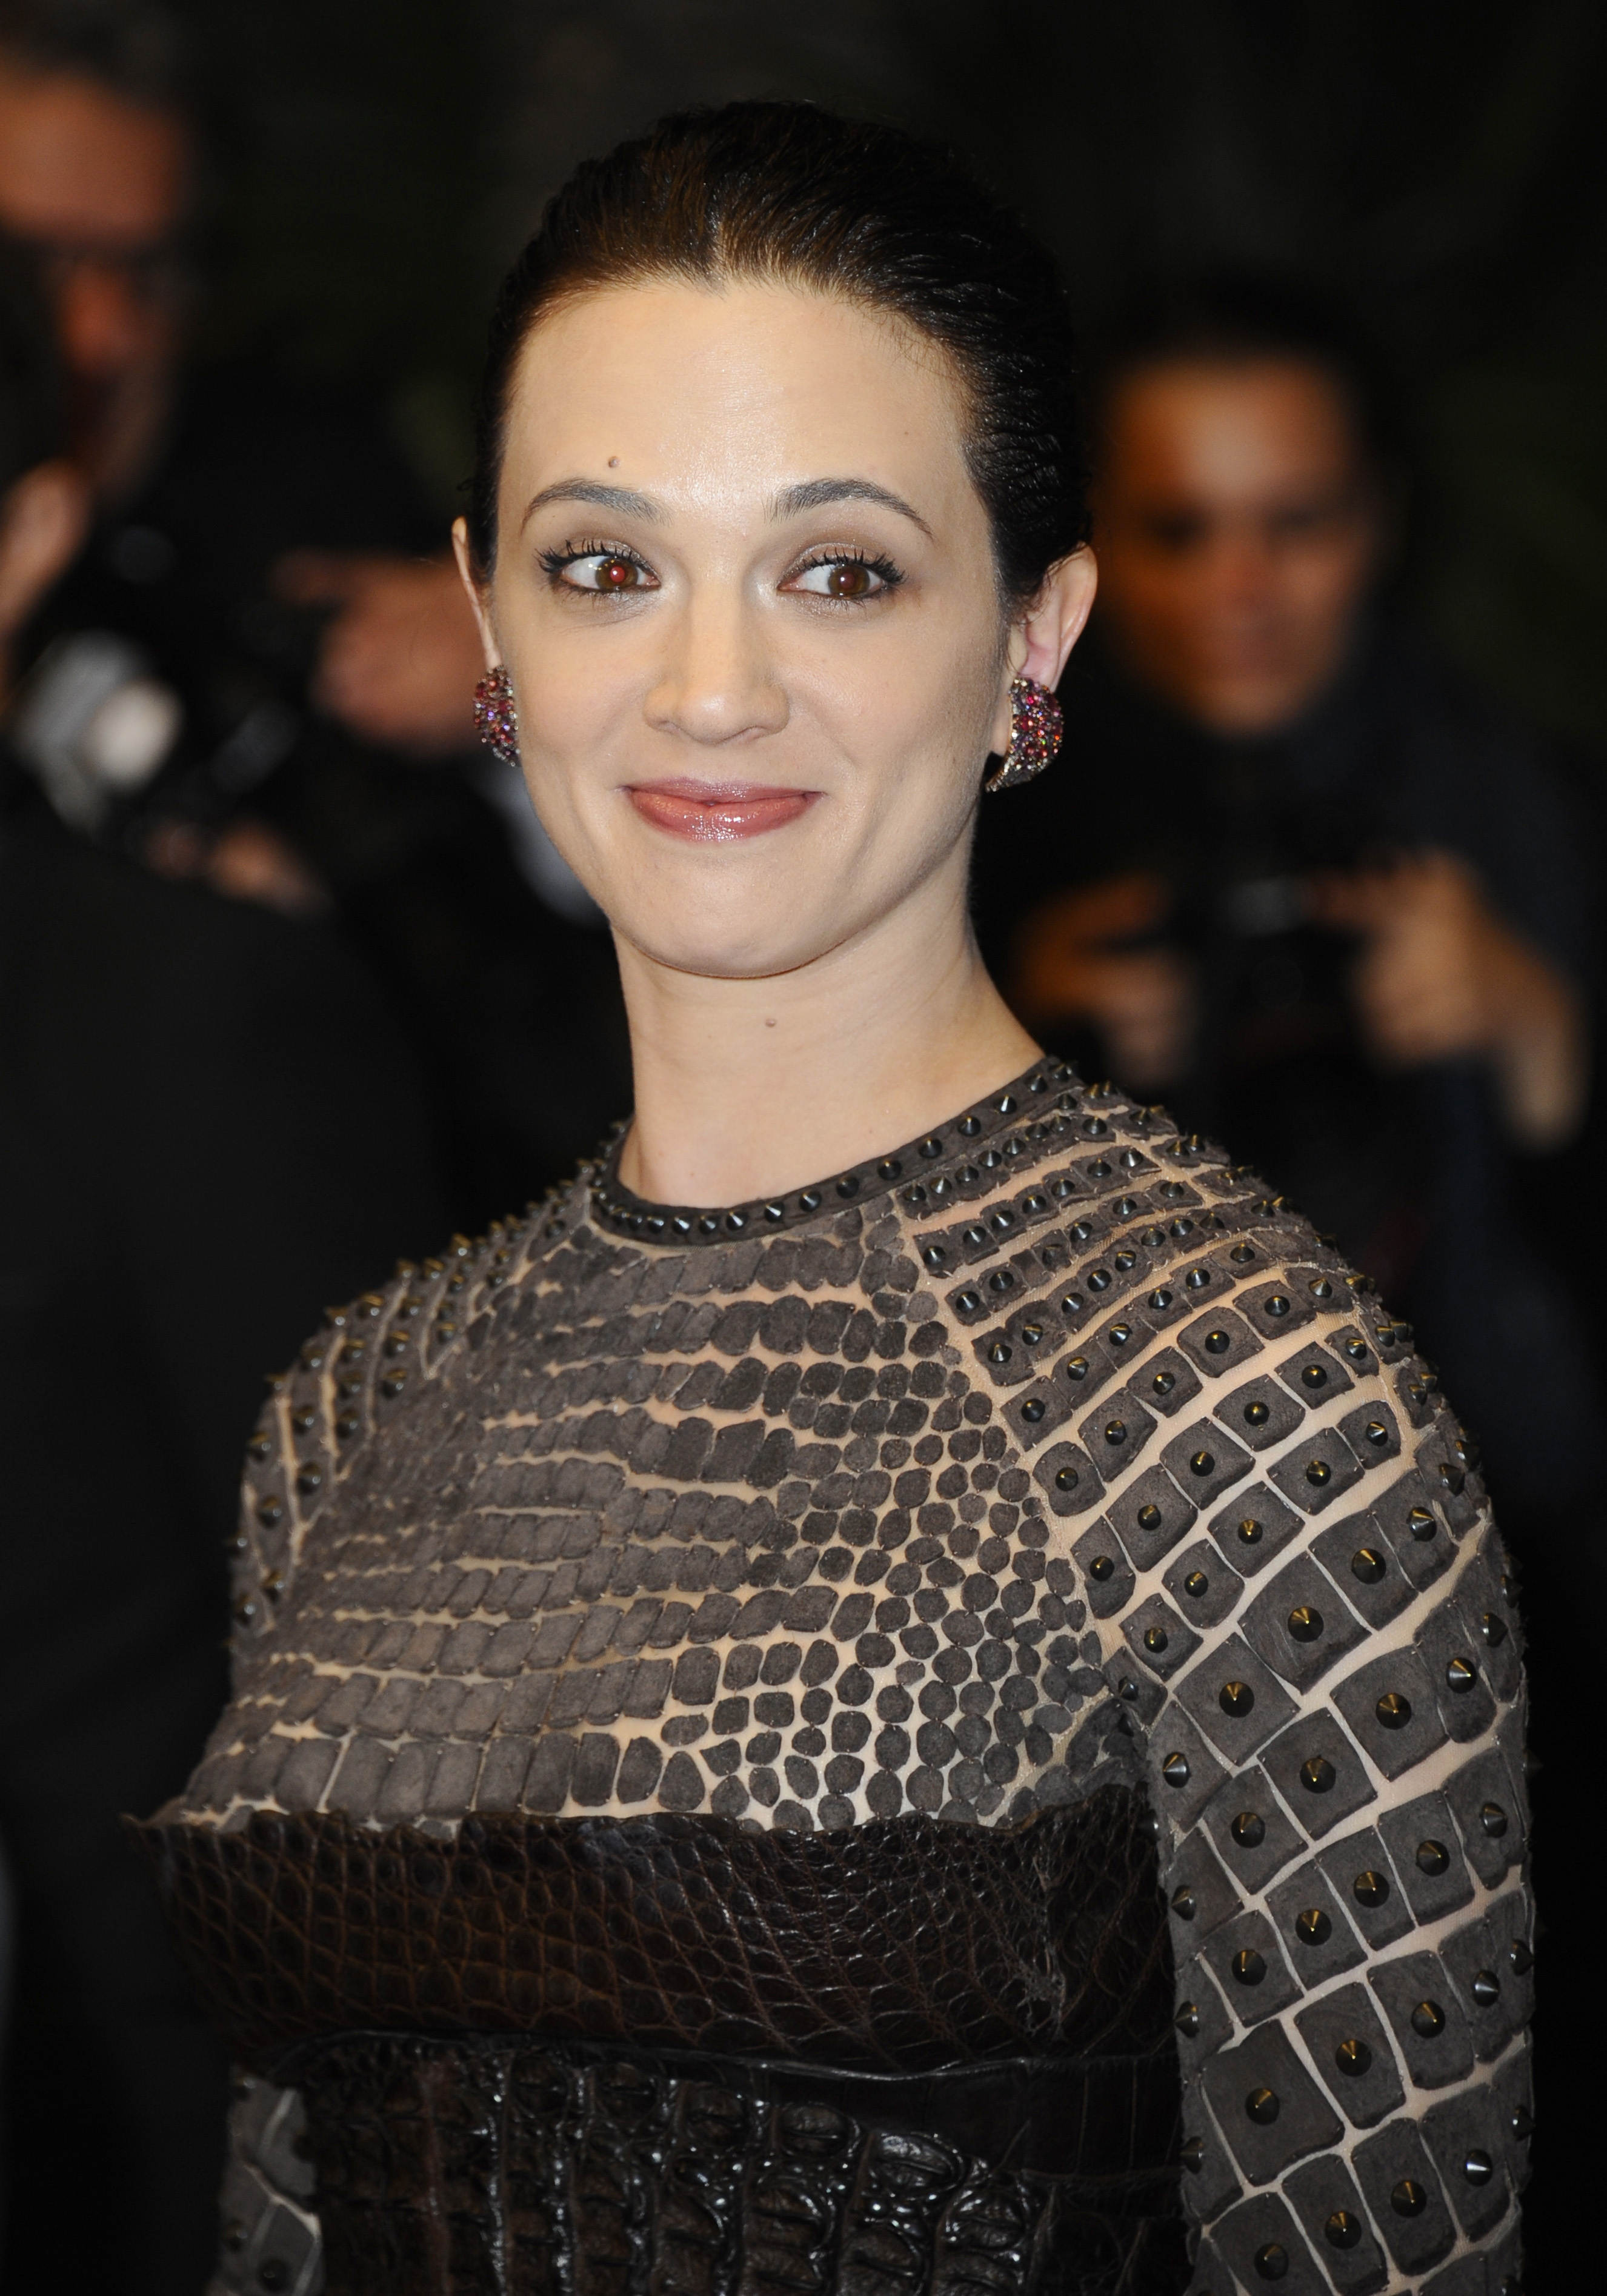 Asia Argento at the 'Dracula 3D' premiere during the 65th Annual Cannes Film Festival. When: 19 May 2012Credit: WENN